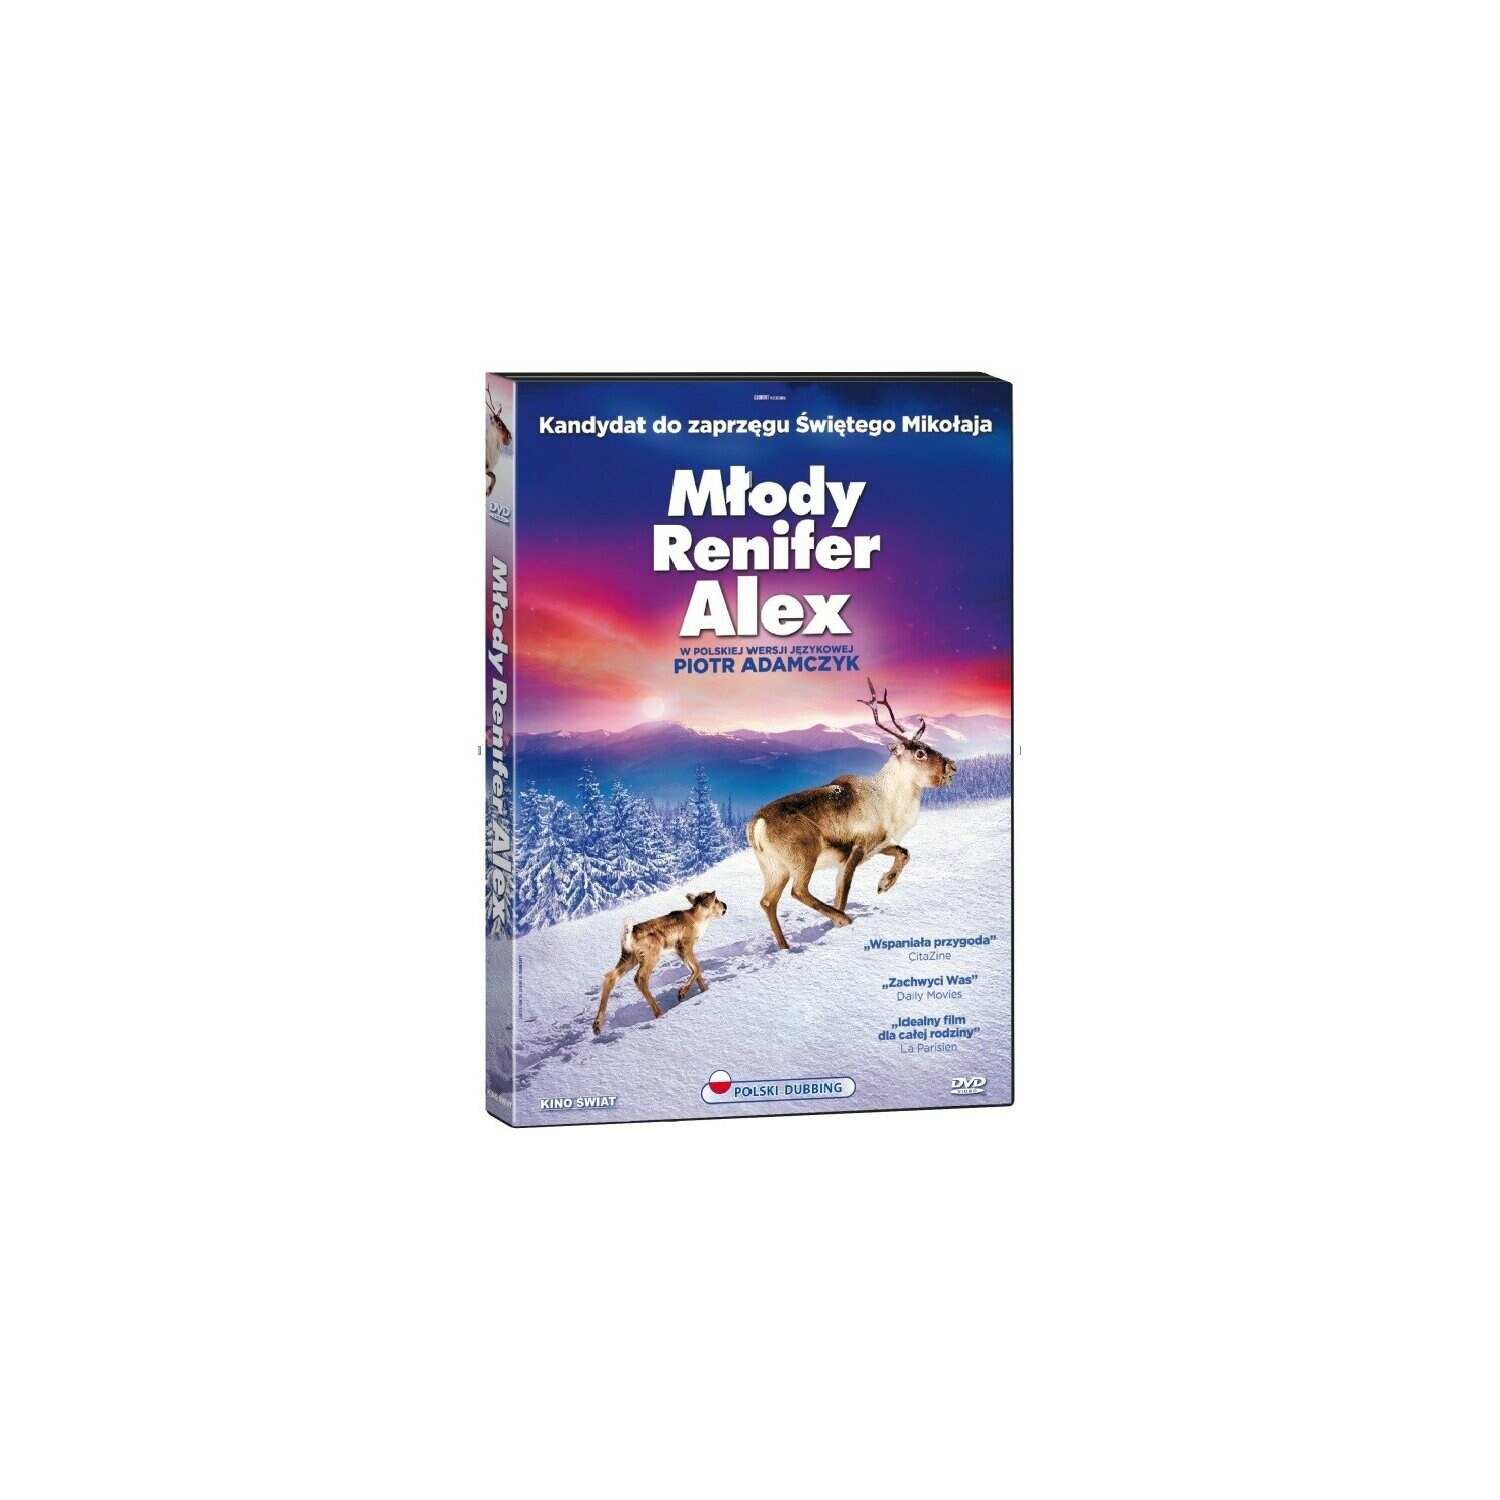 Młody renifer Alex (DVD)